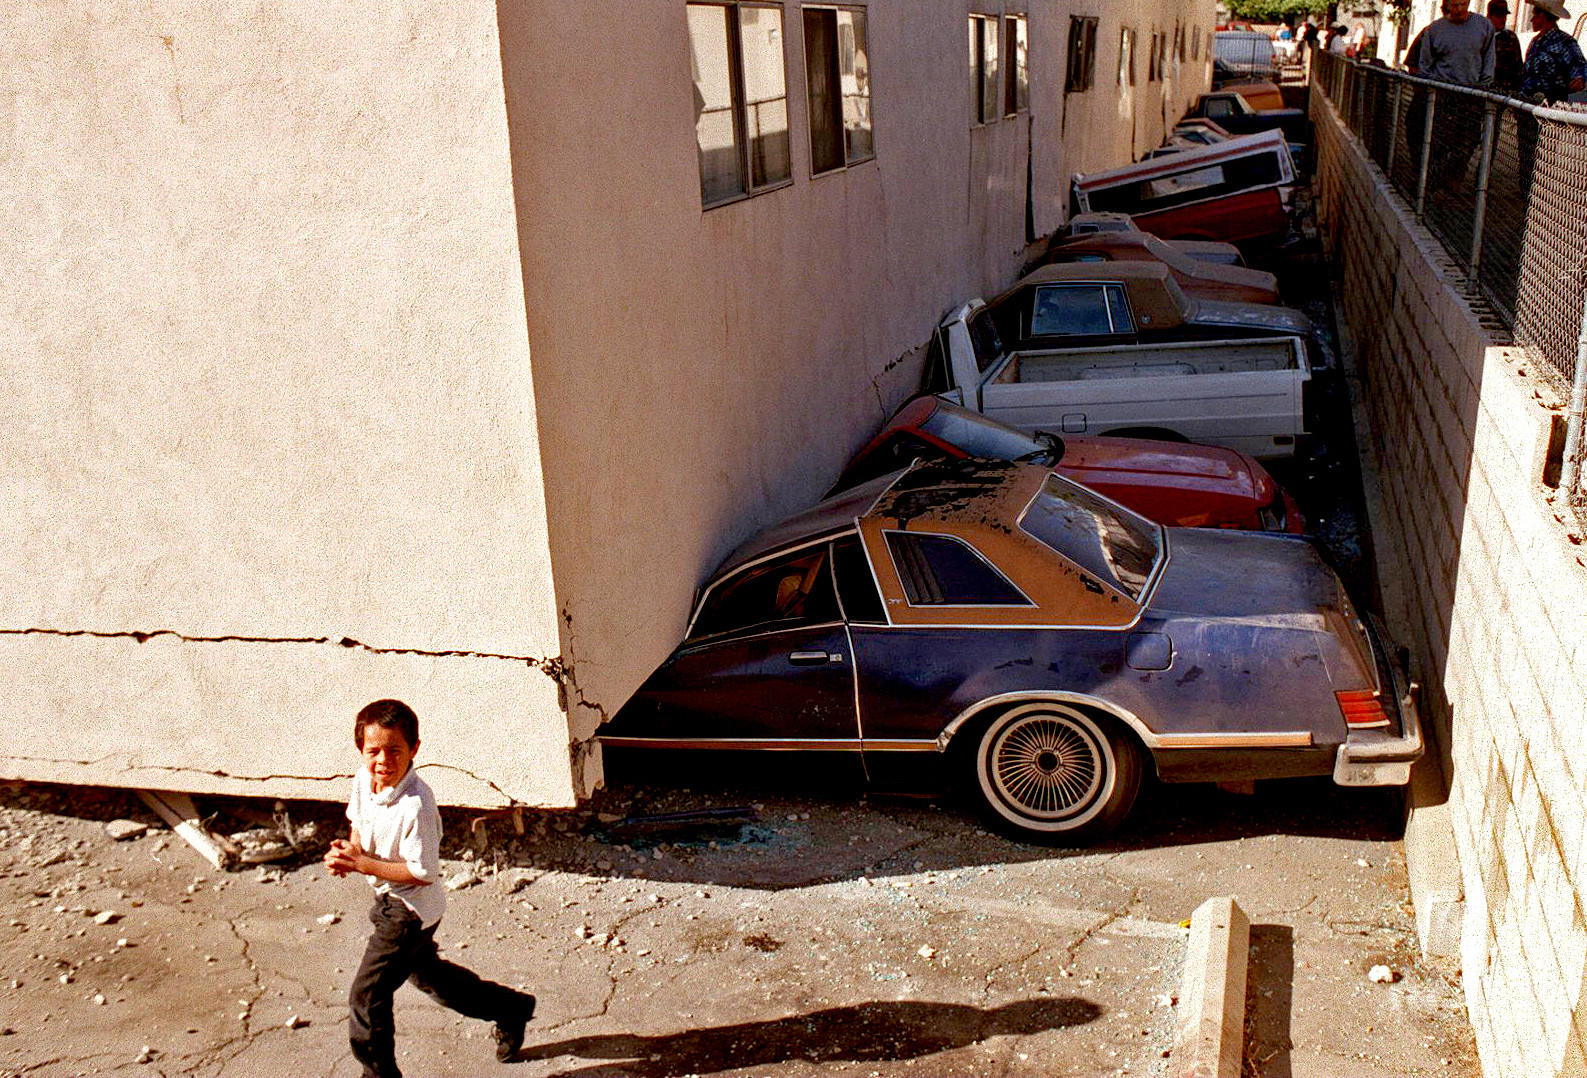 The Northridge earthquake of 1994